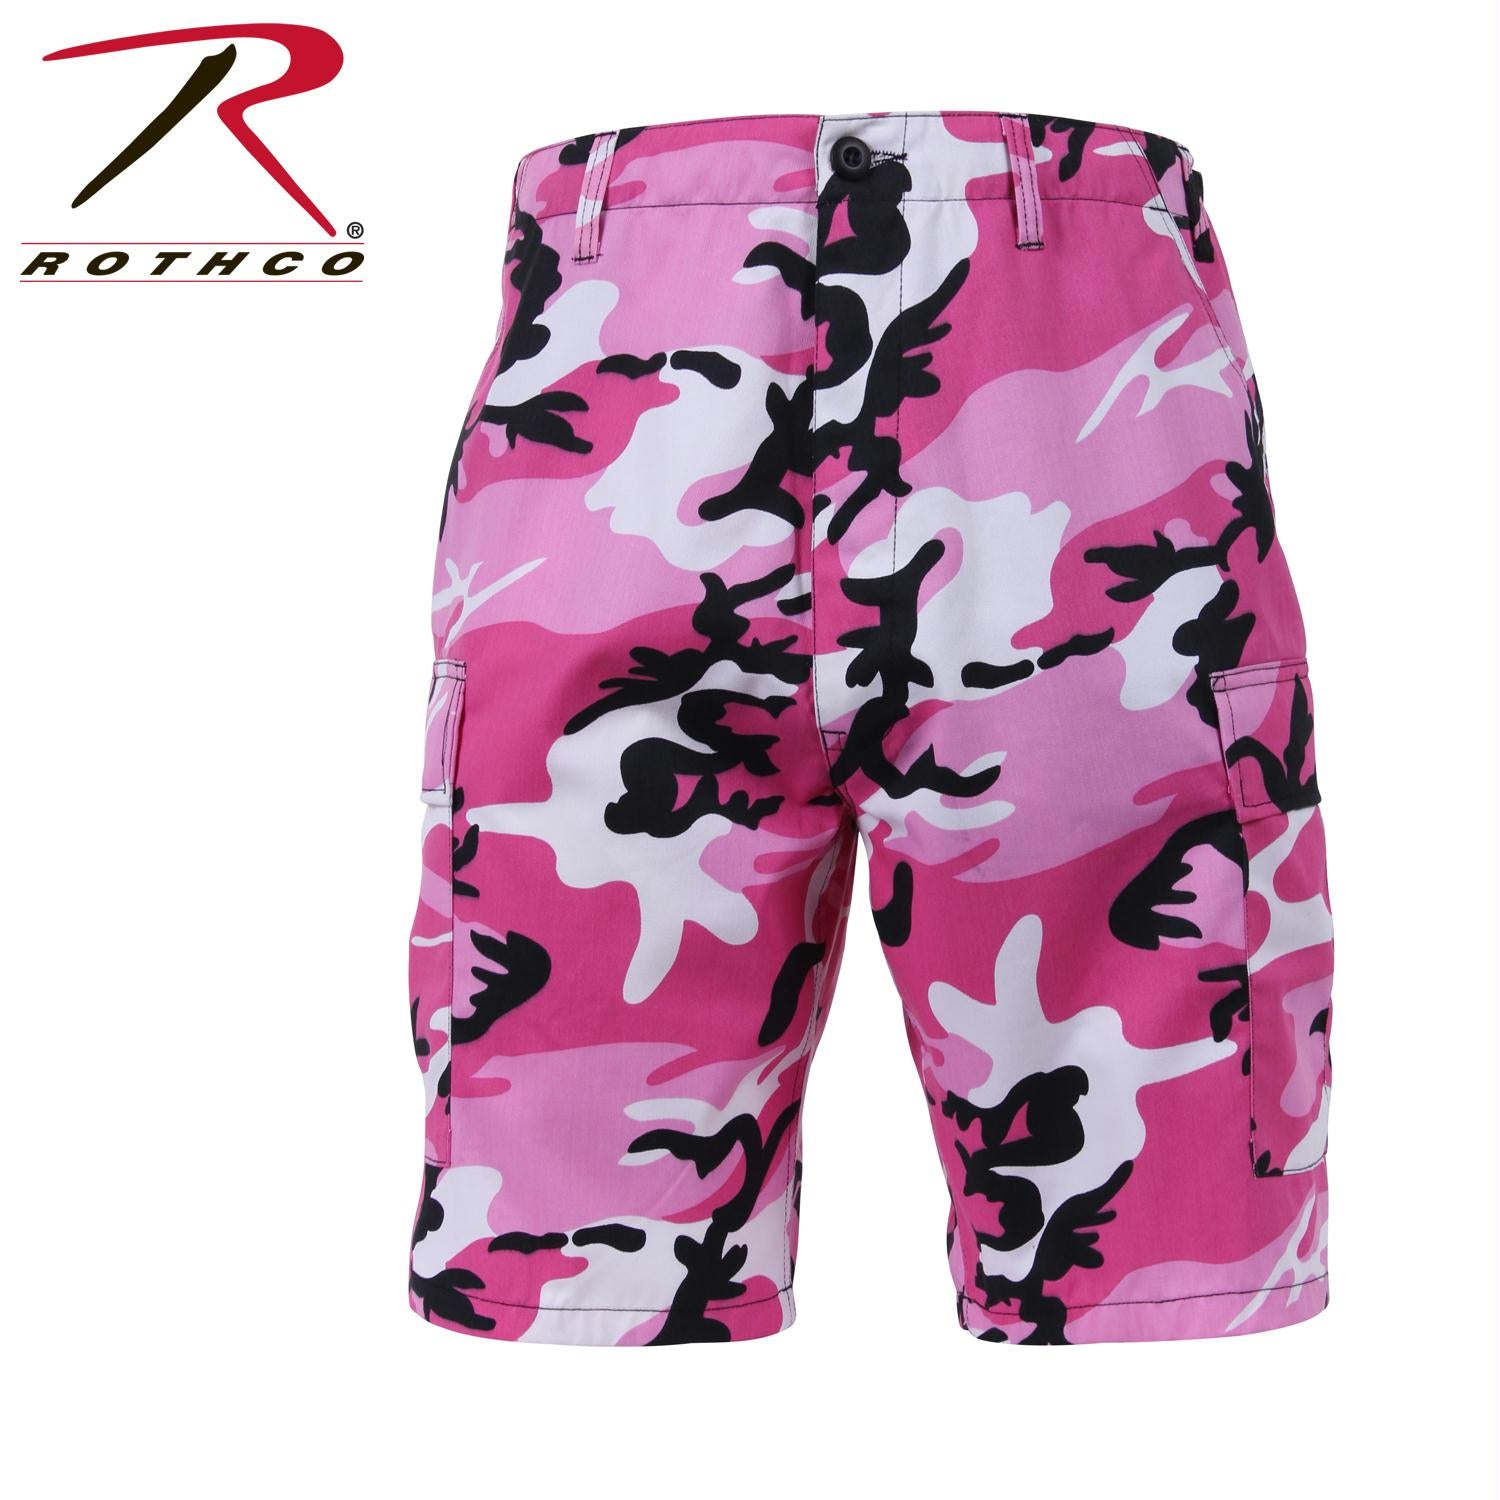 Rothco Colored Camo BDU Shorts - Pink Camo / L